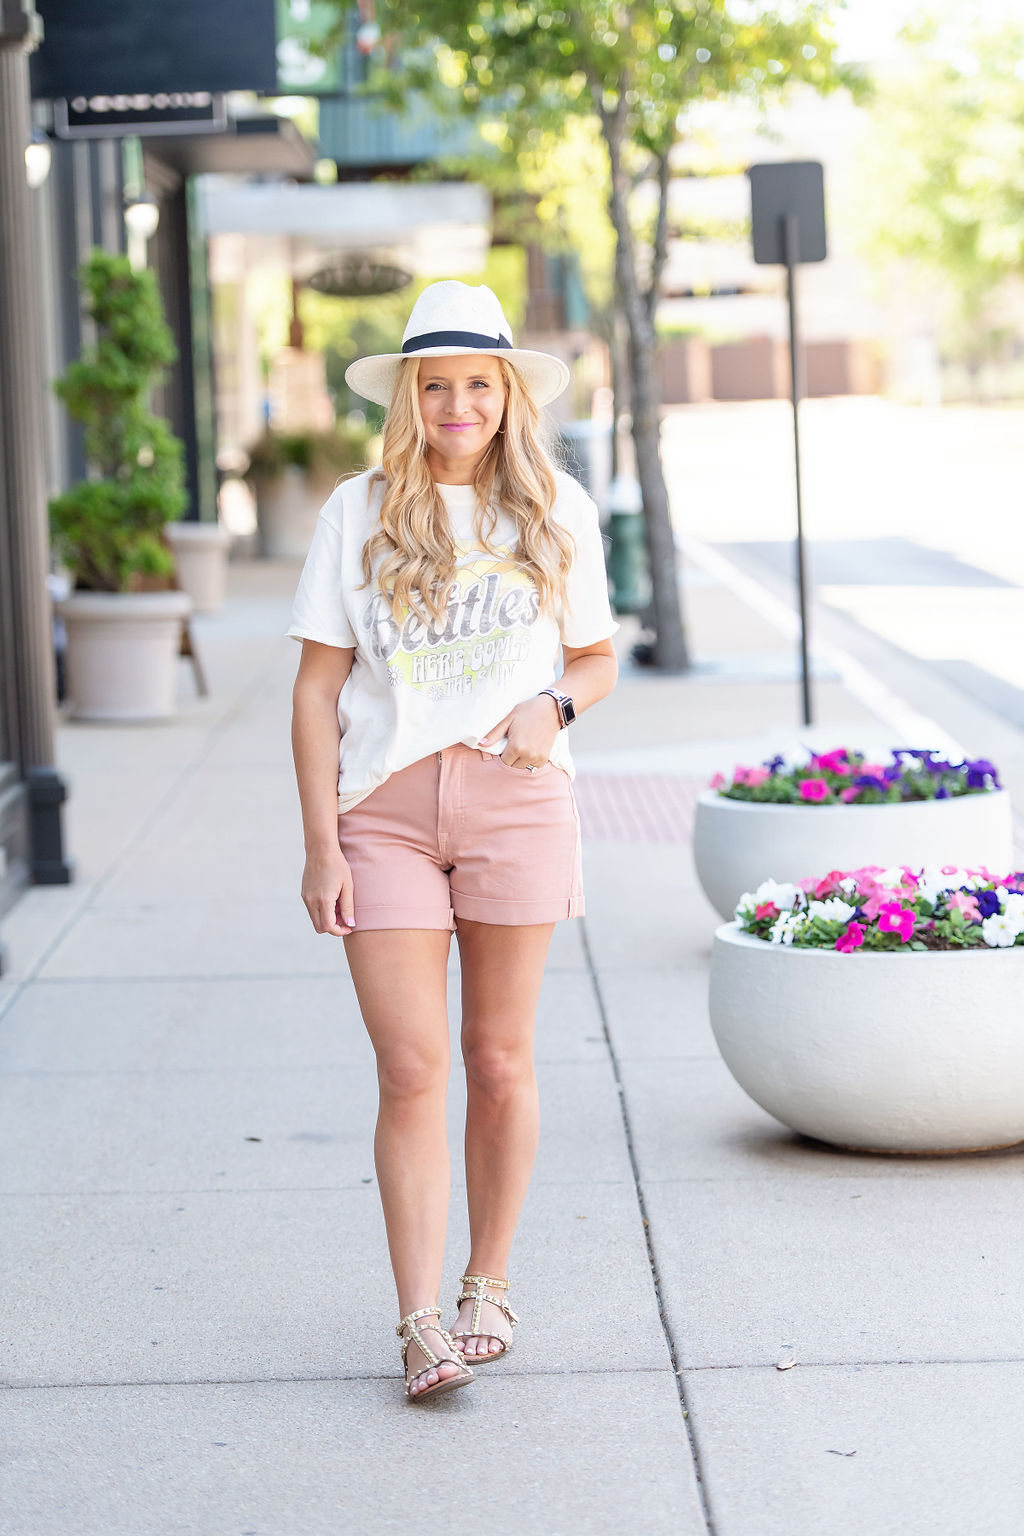 Denim Shorts by popular Houston fashion blog, The House of Fancy: image of a woman standing outside and wearing a The Beatles graphic t-shirt, pink denim shorts, white fedora hat, and studded gold strap sandals.